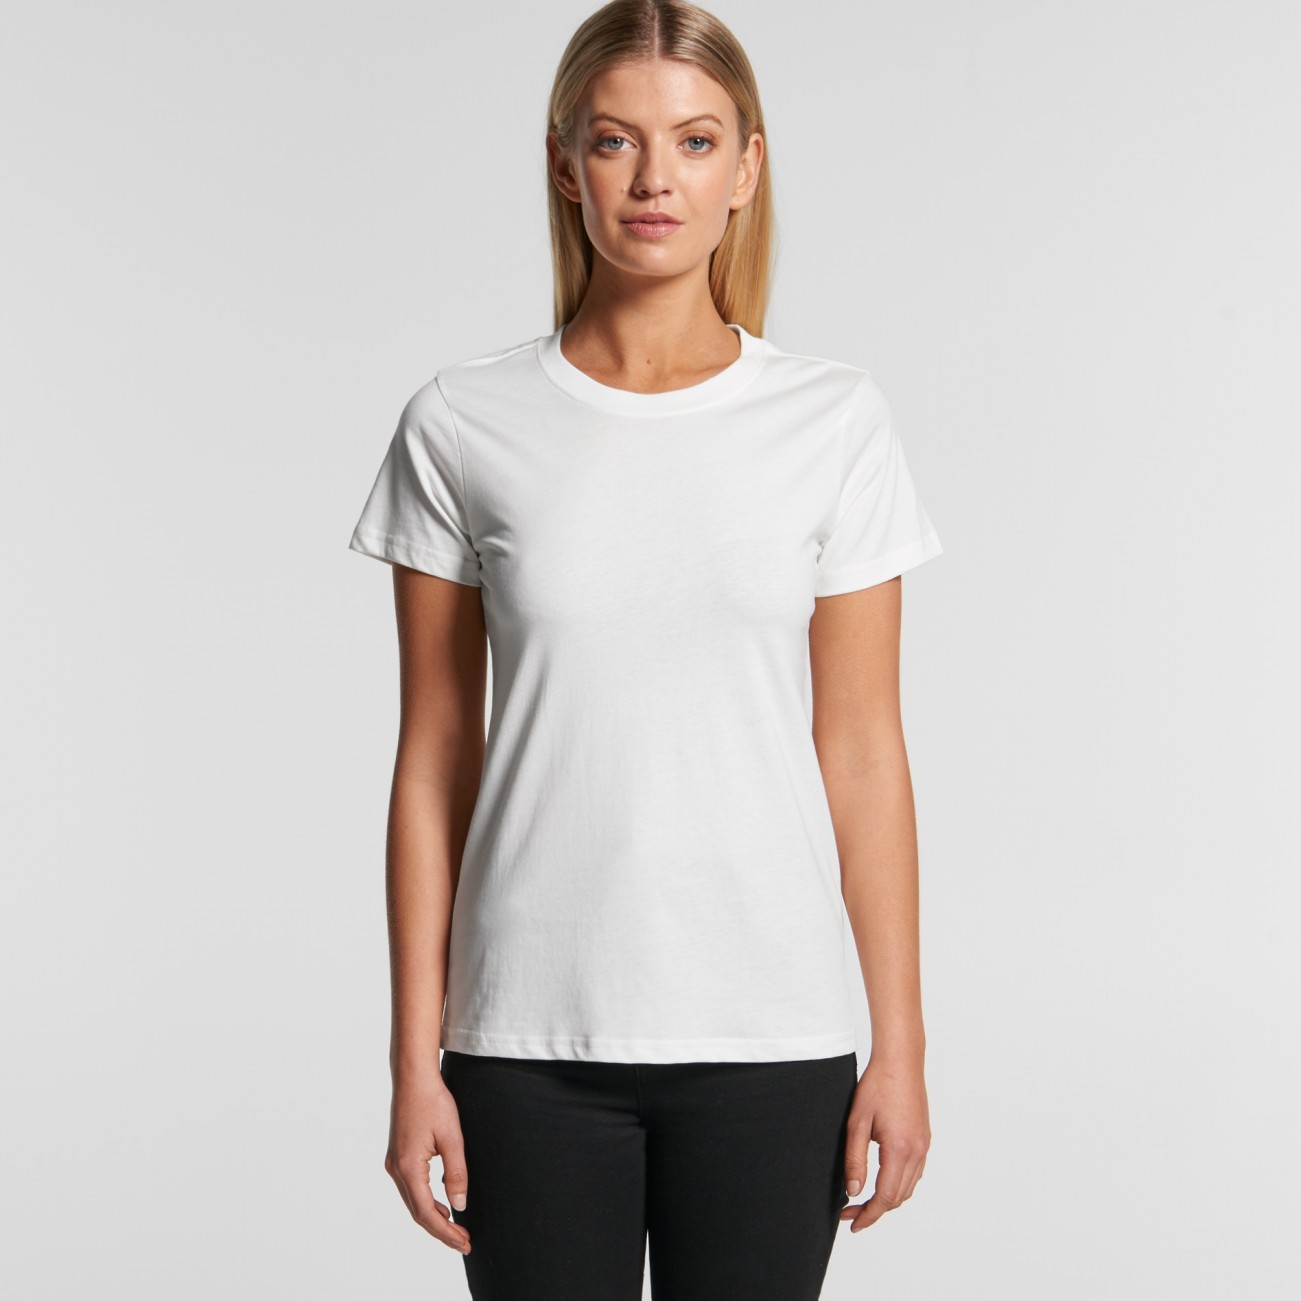 4001G WOMENS MAPLE ORGANIC TEE